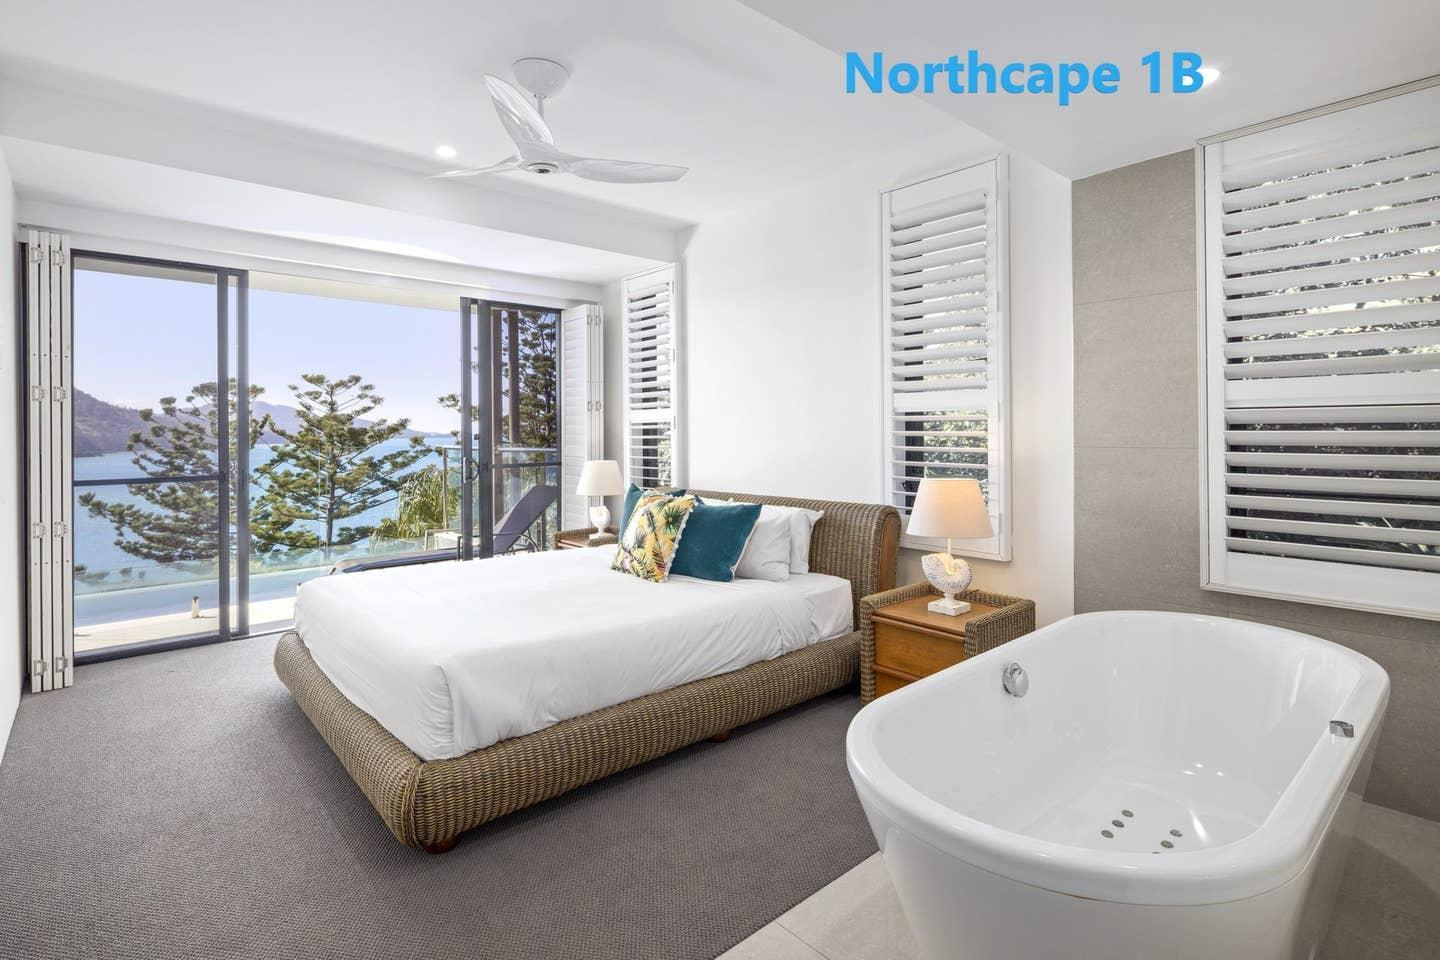 Northcape One 2 Bedroom - Choose Between 1A or 1B